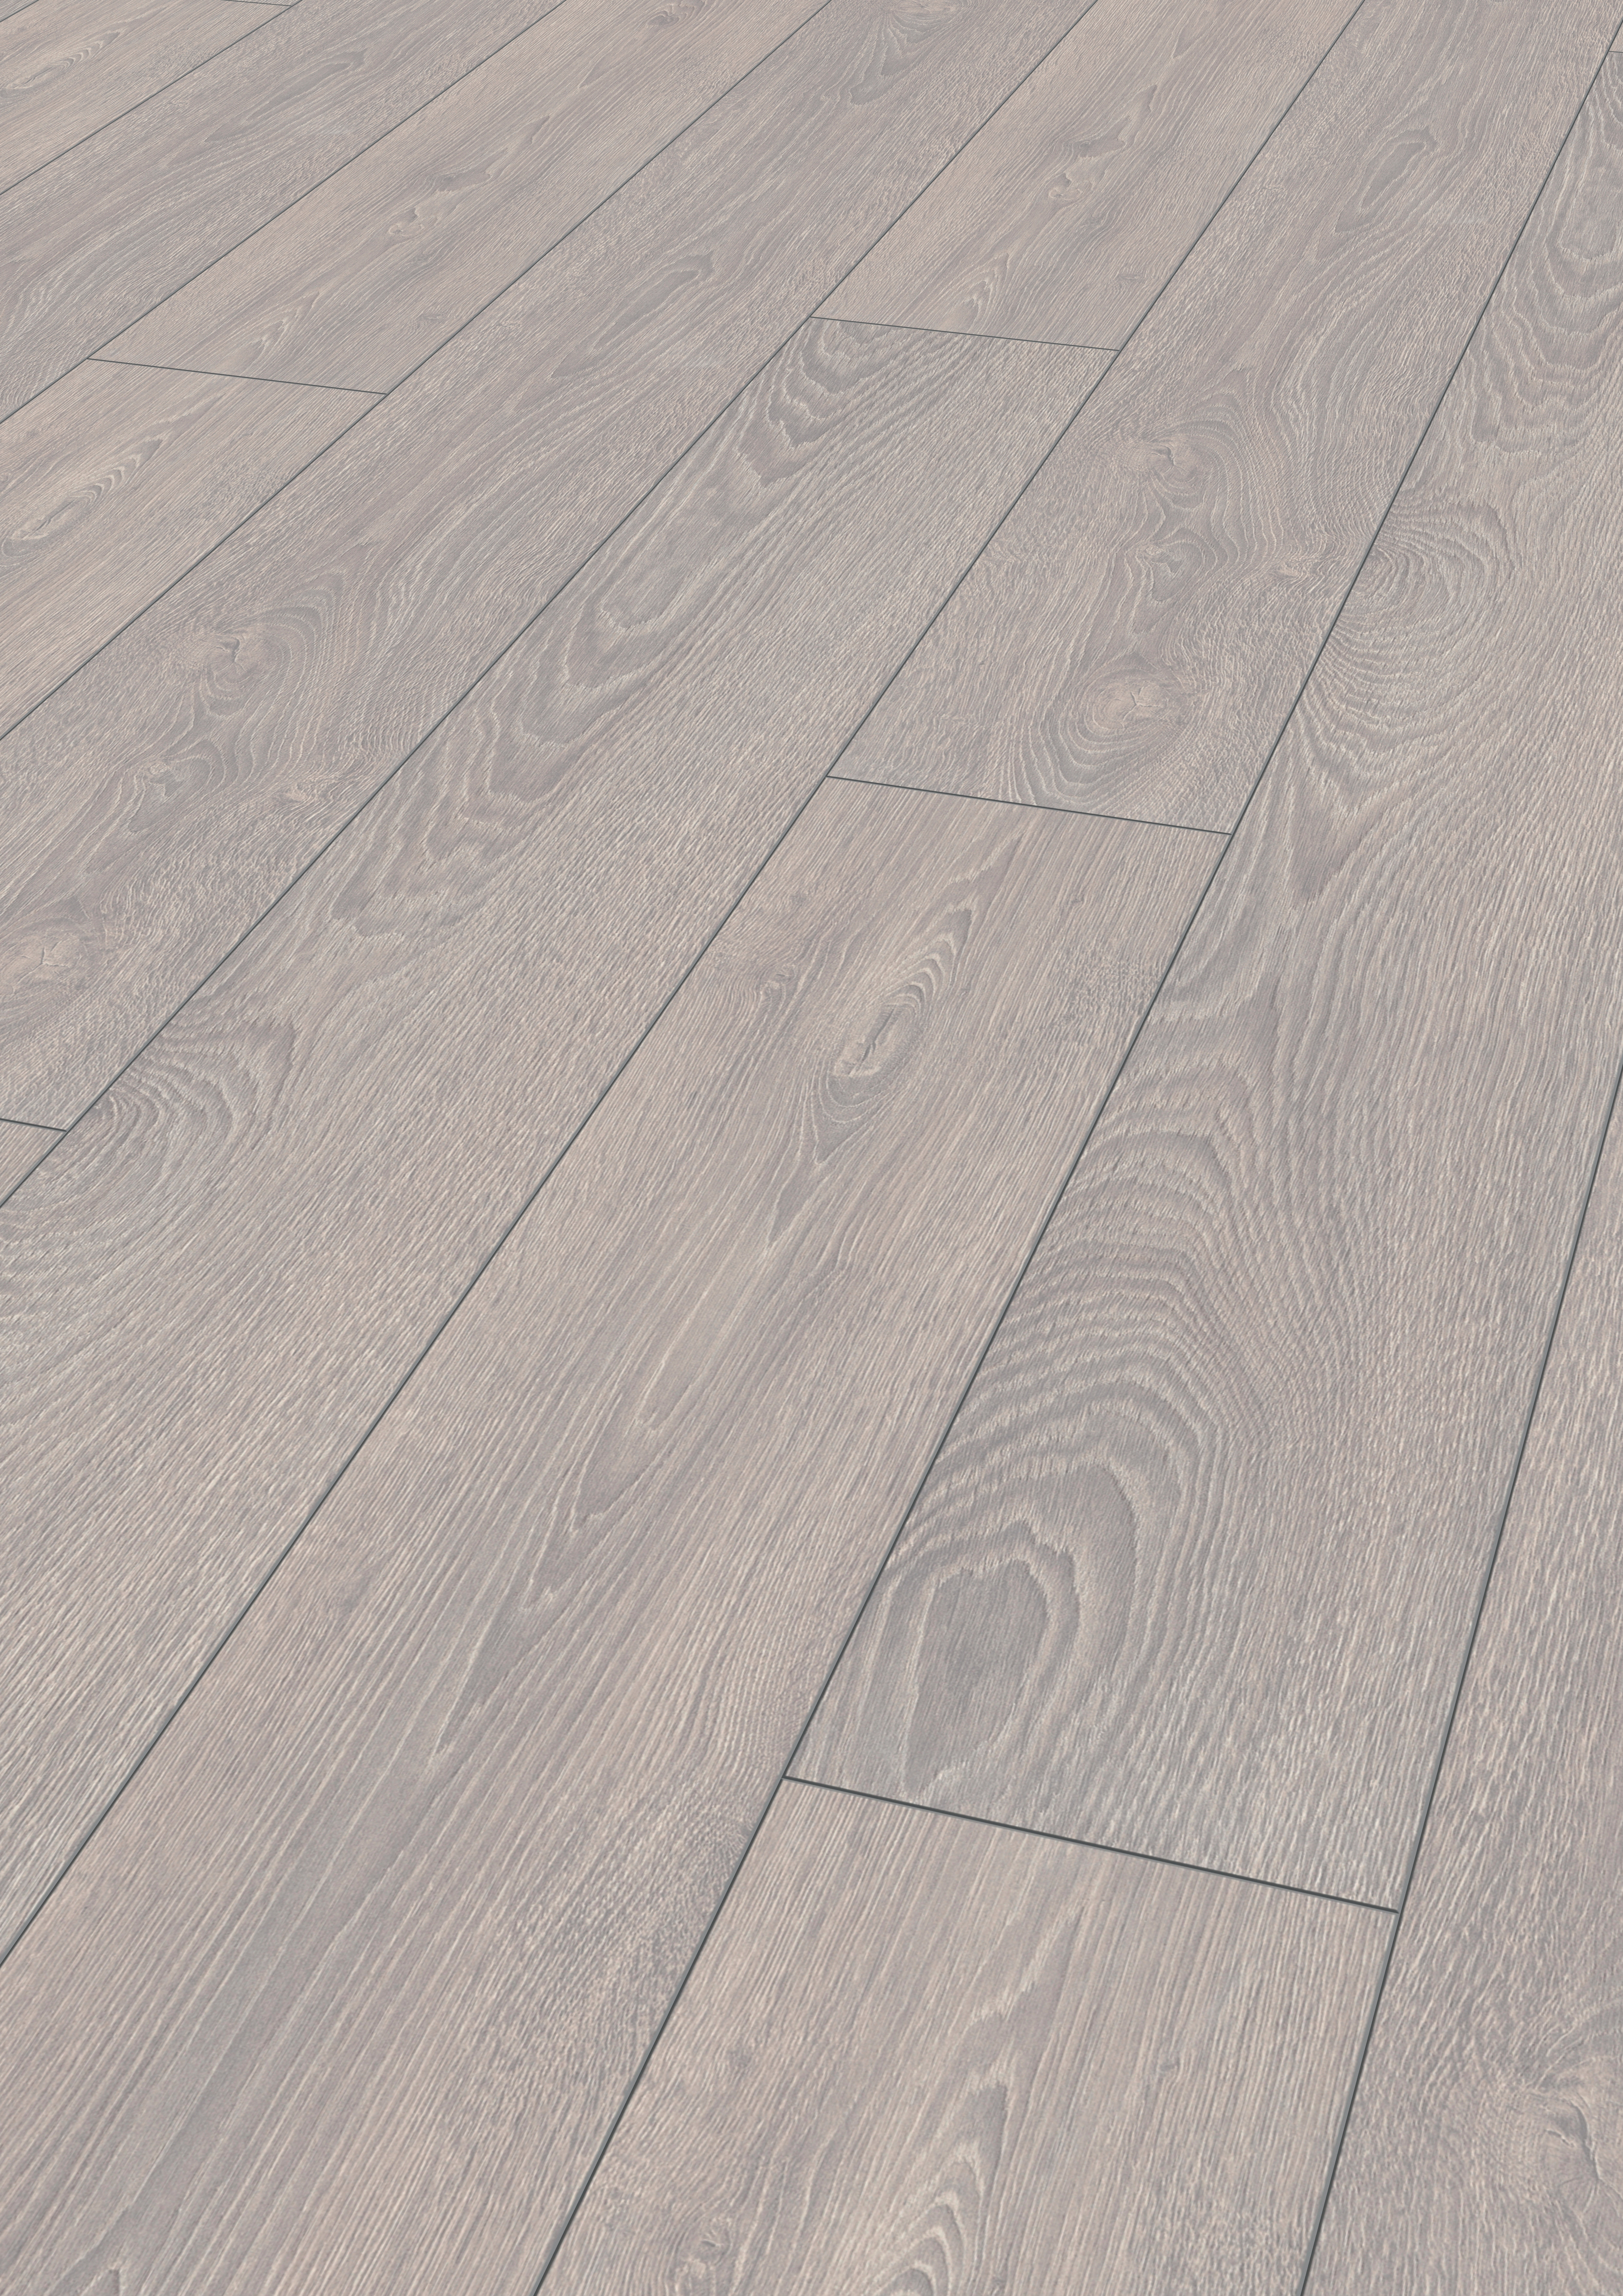 hardwood flooring mississauga ontario of mammut laminate flooring in country house plank style kronotex inside download picture